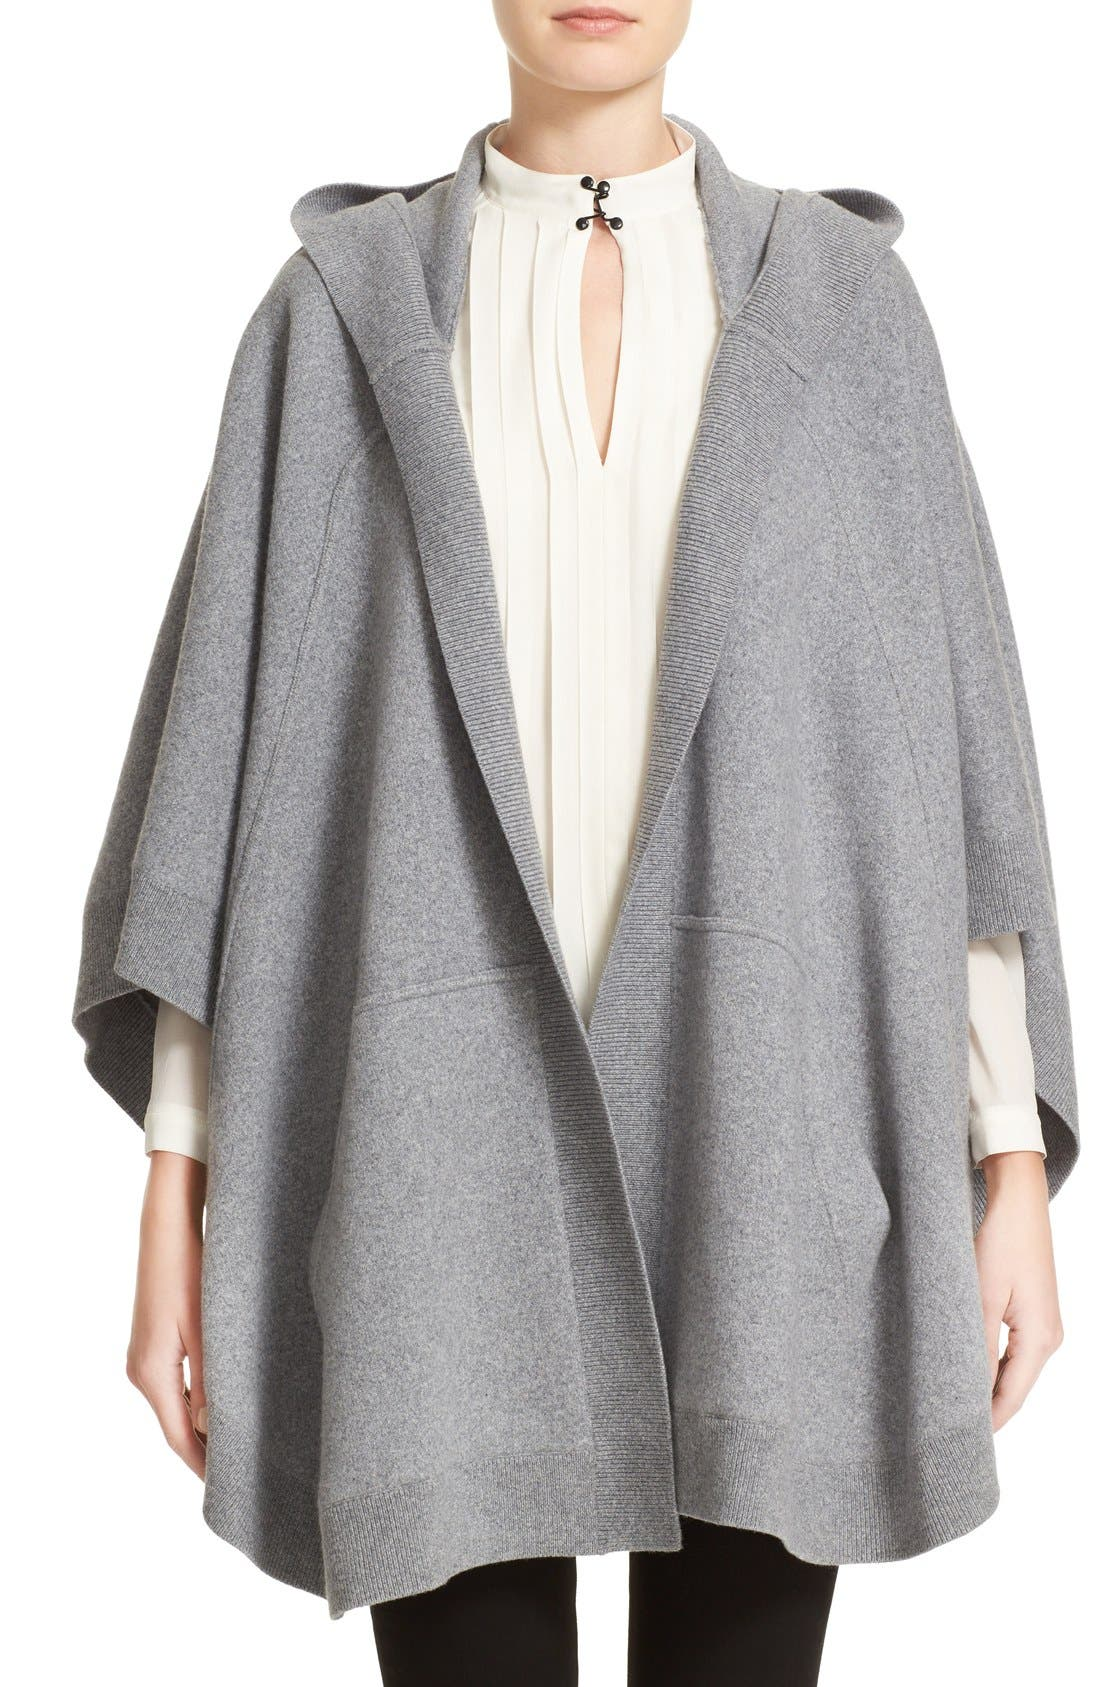 Main Image - Burberry Carla Hooded Knit Poncho